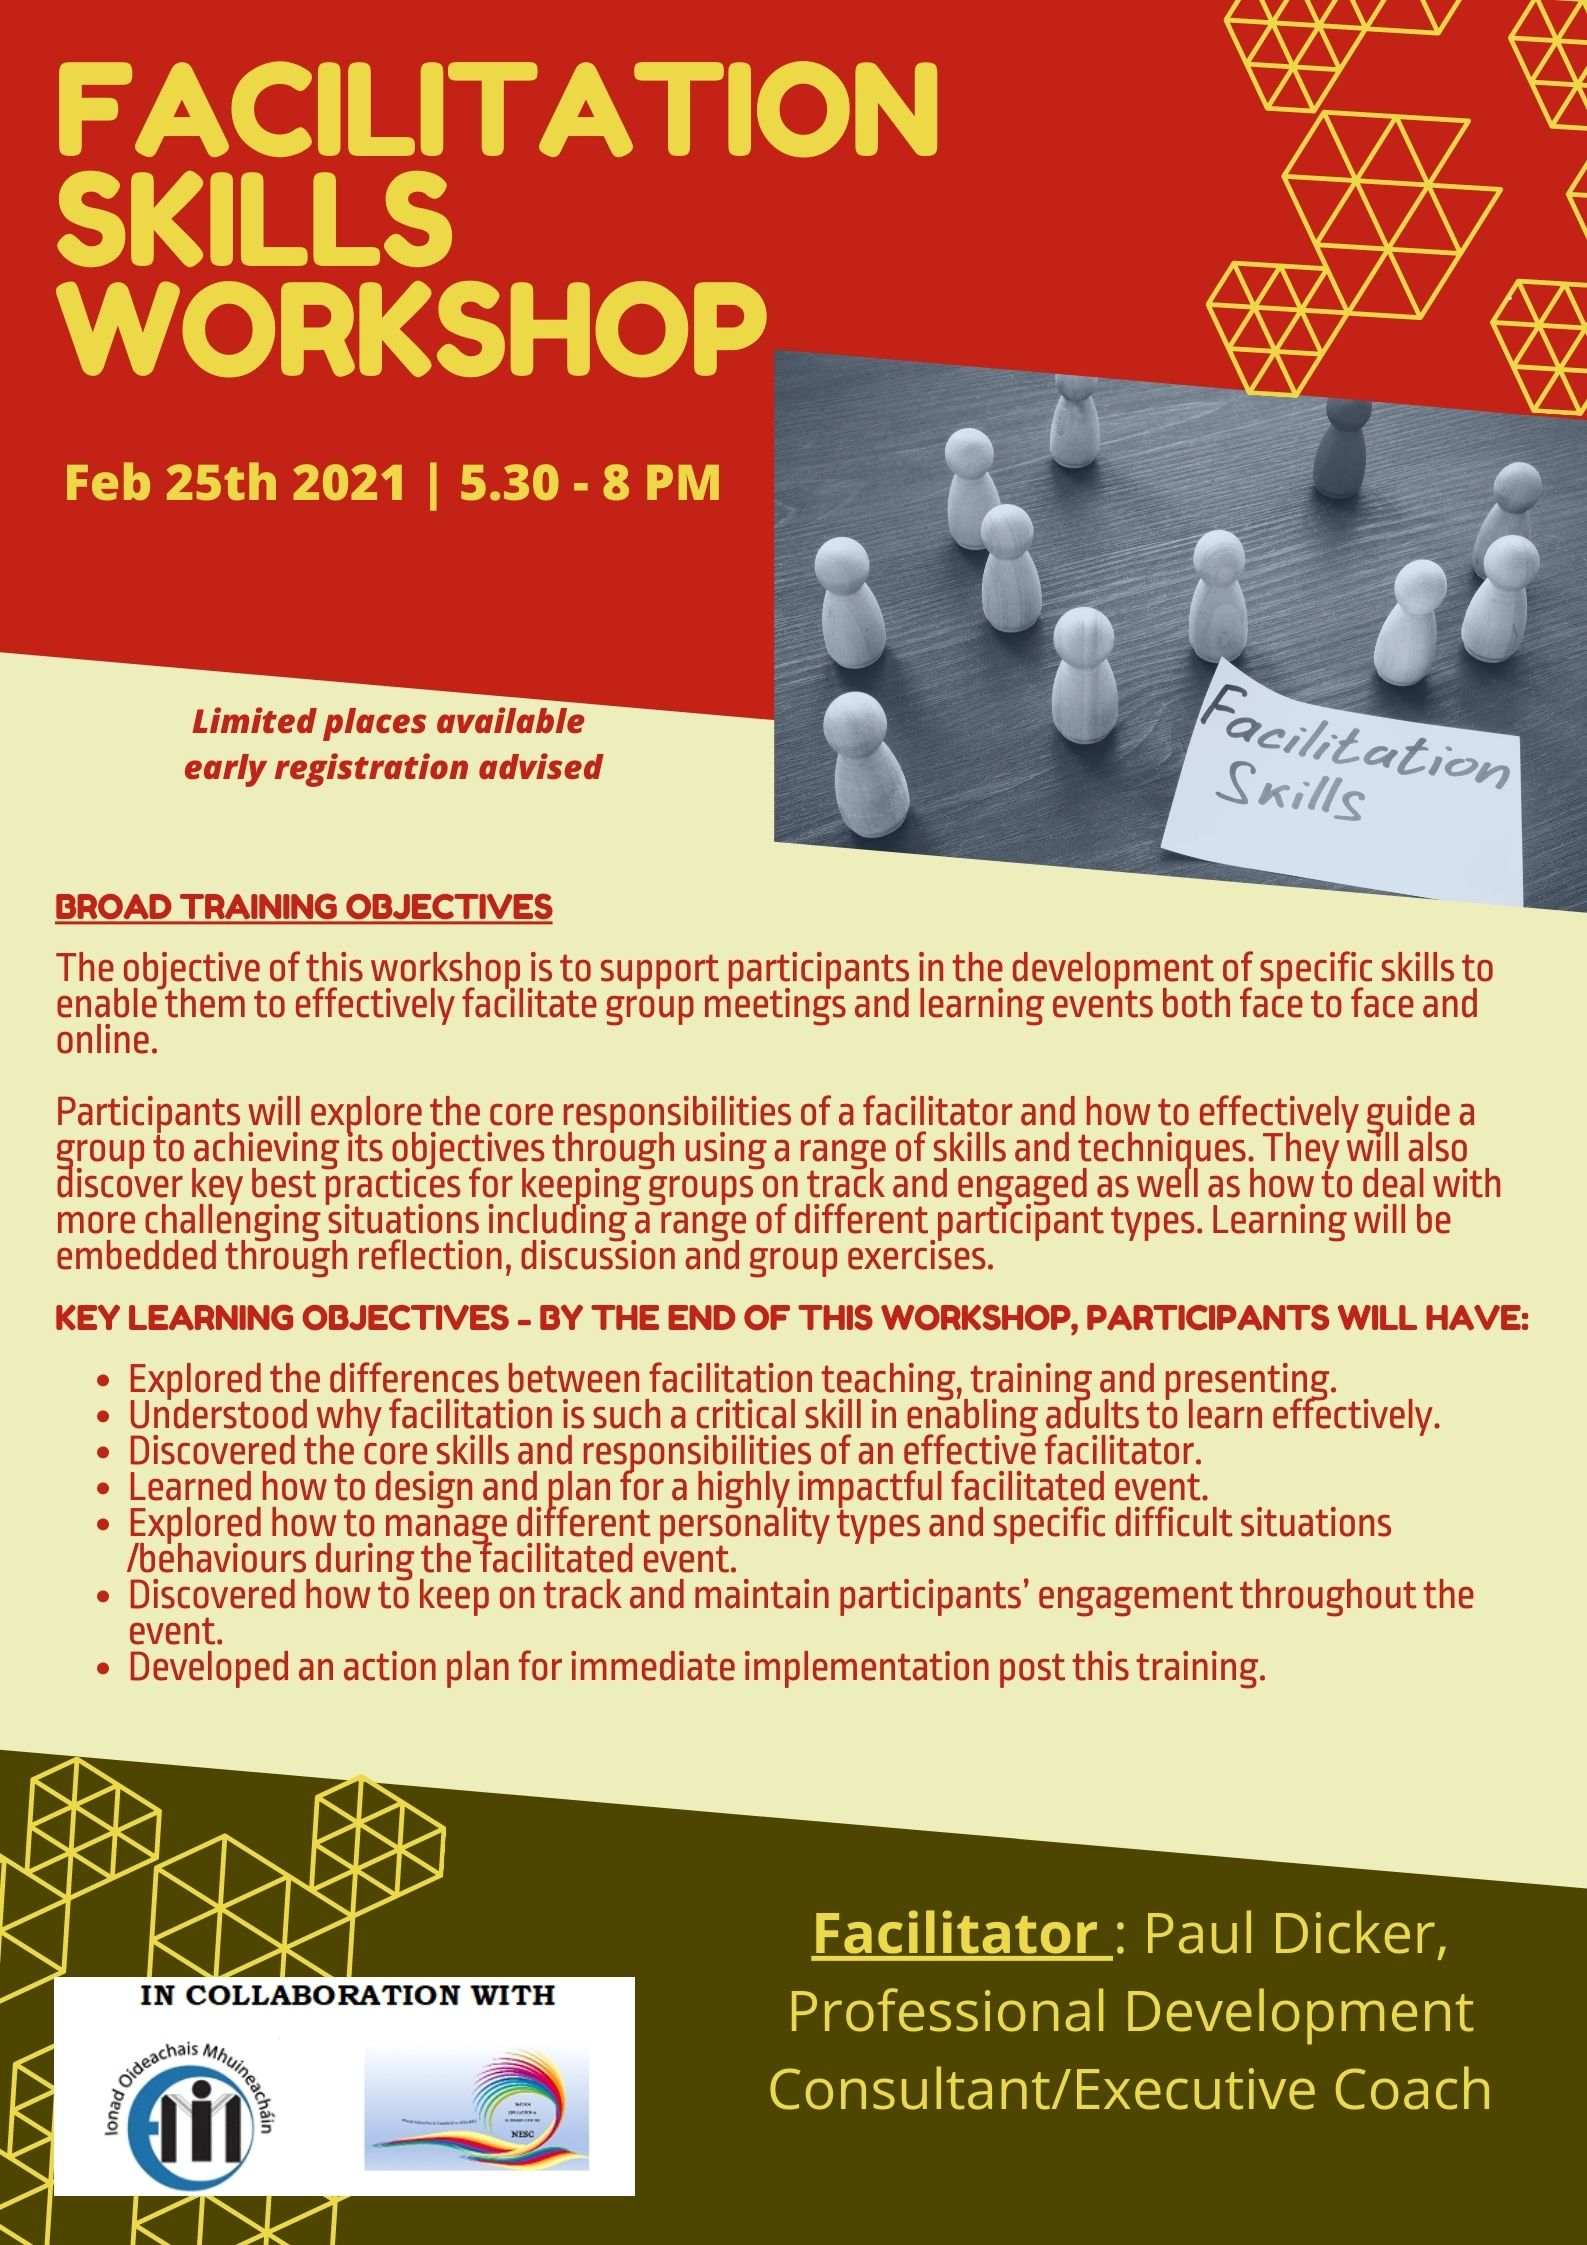 feb 25 facilitation skills workshop